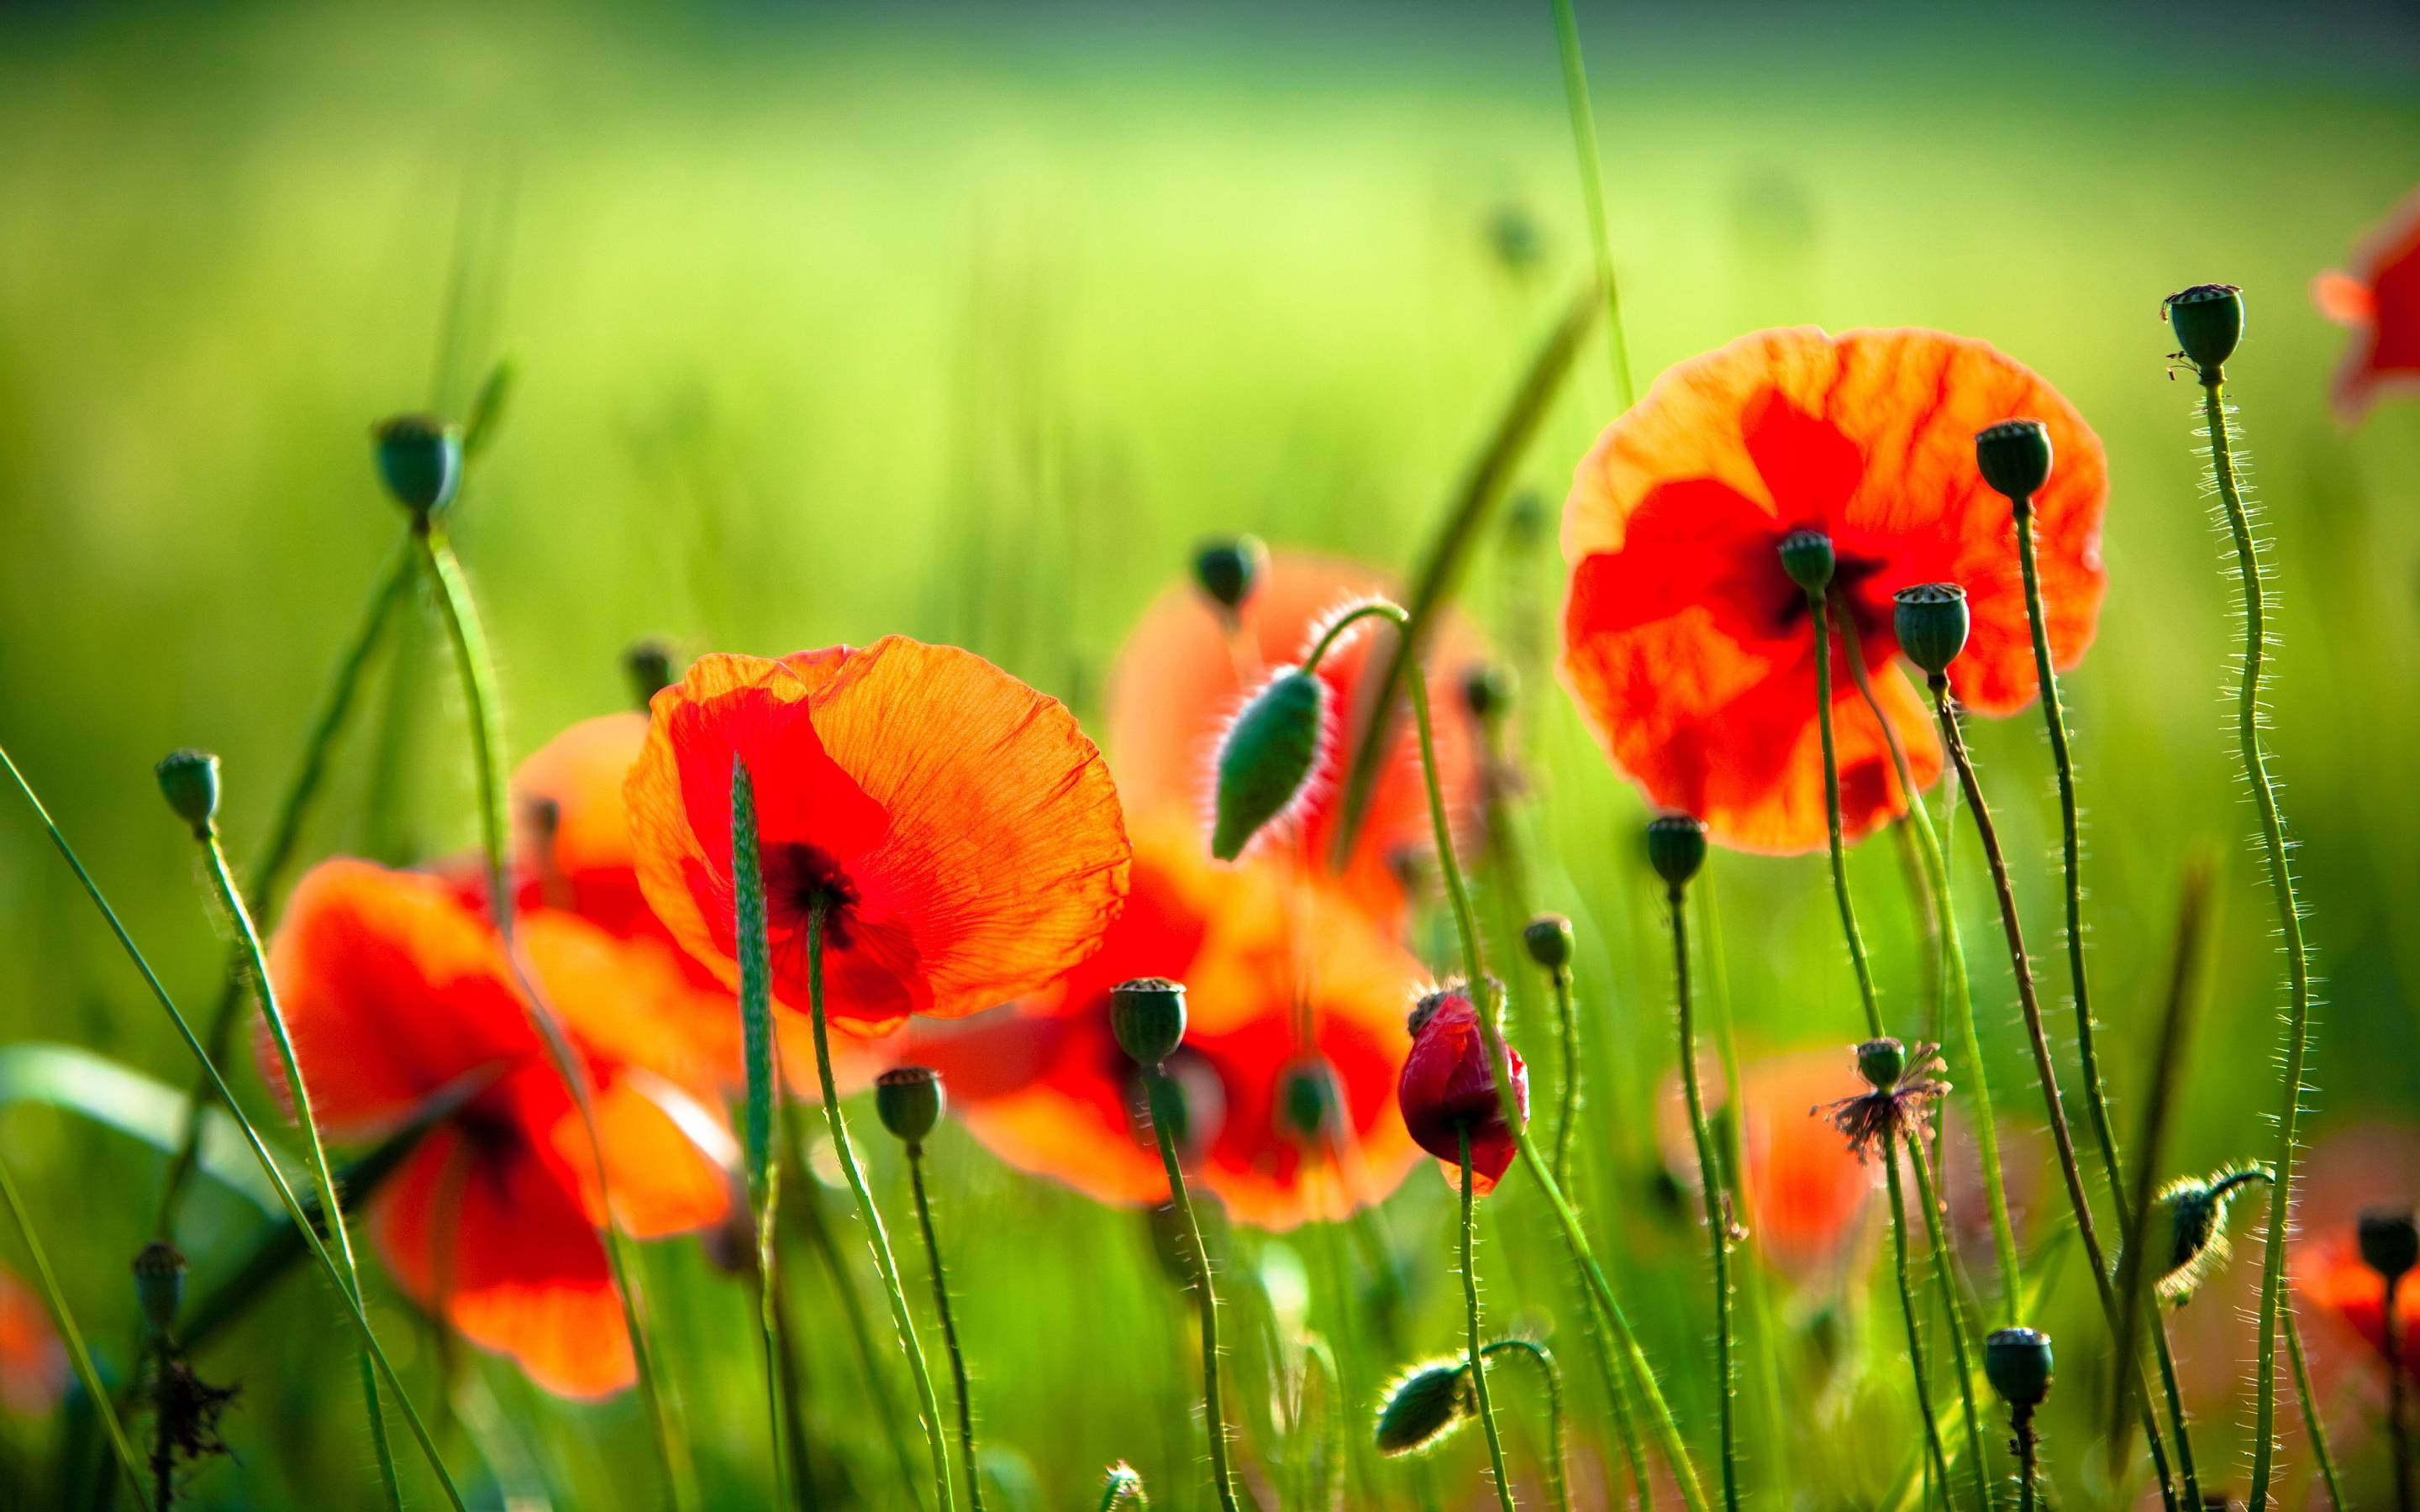 poppies wallpapers - wallpaper cave